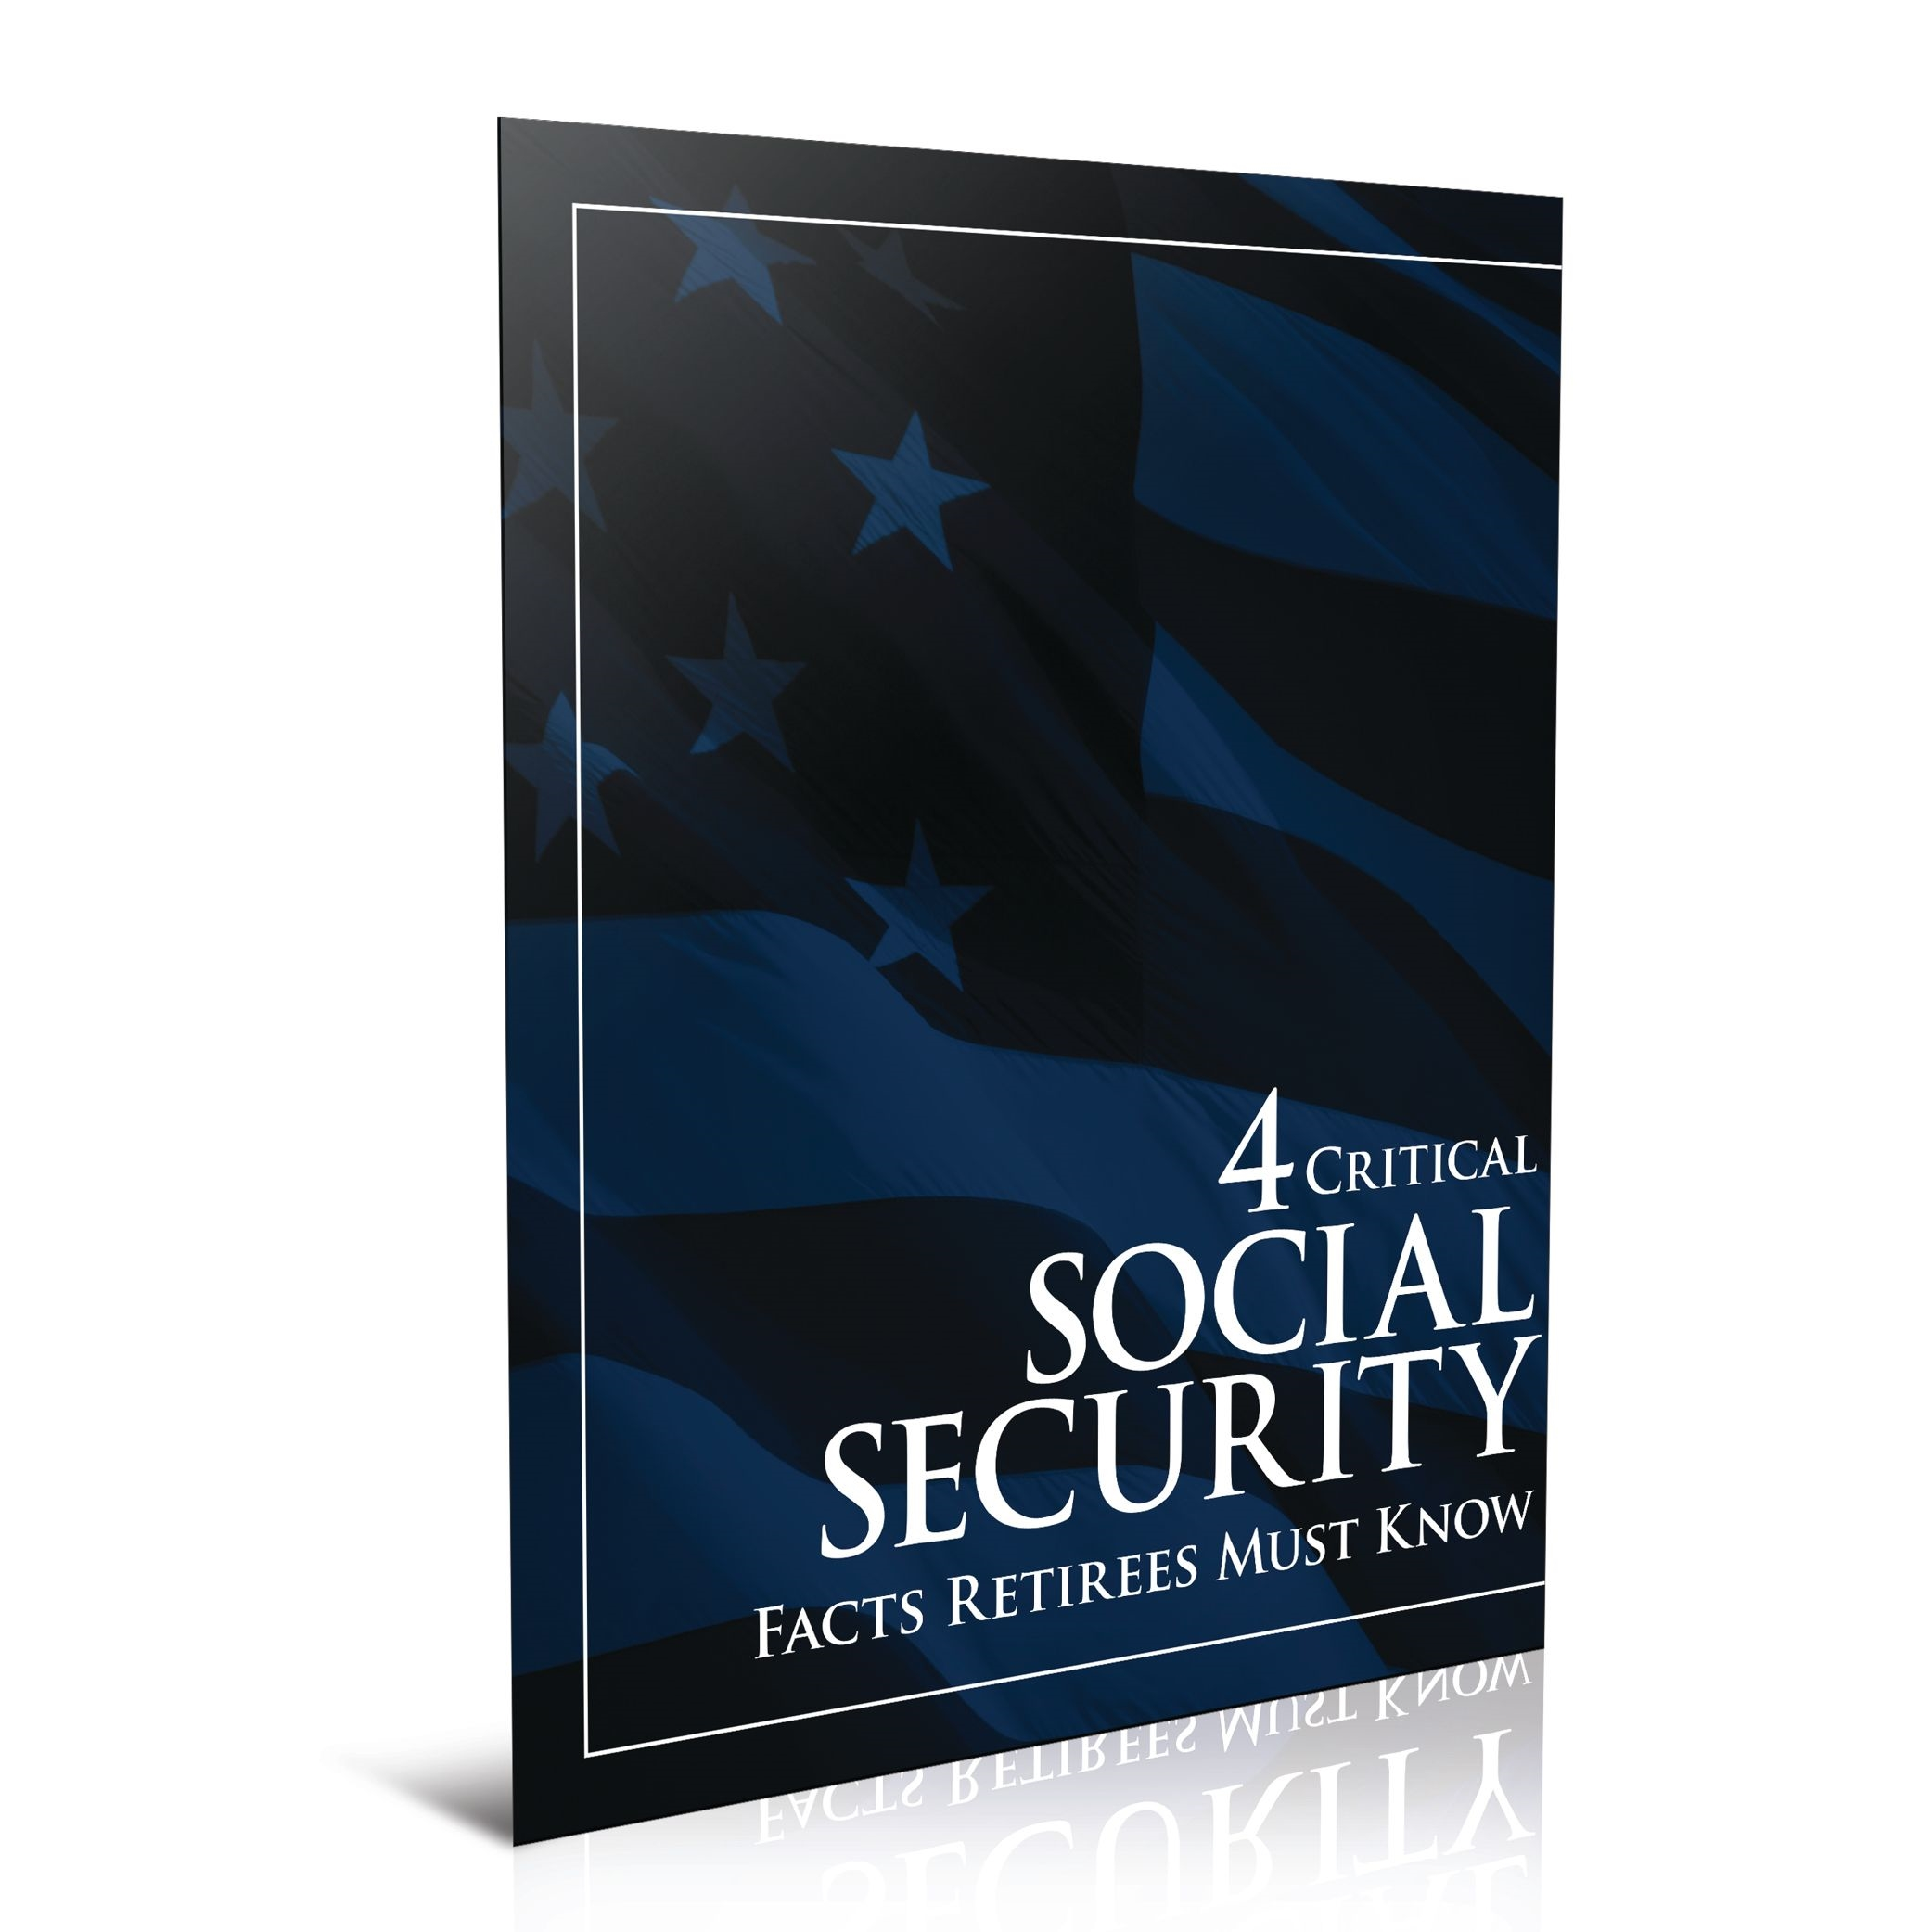 <br /><br />4 Critical Social Security Facts